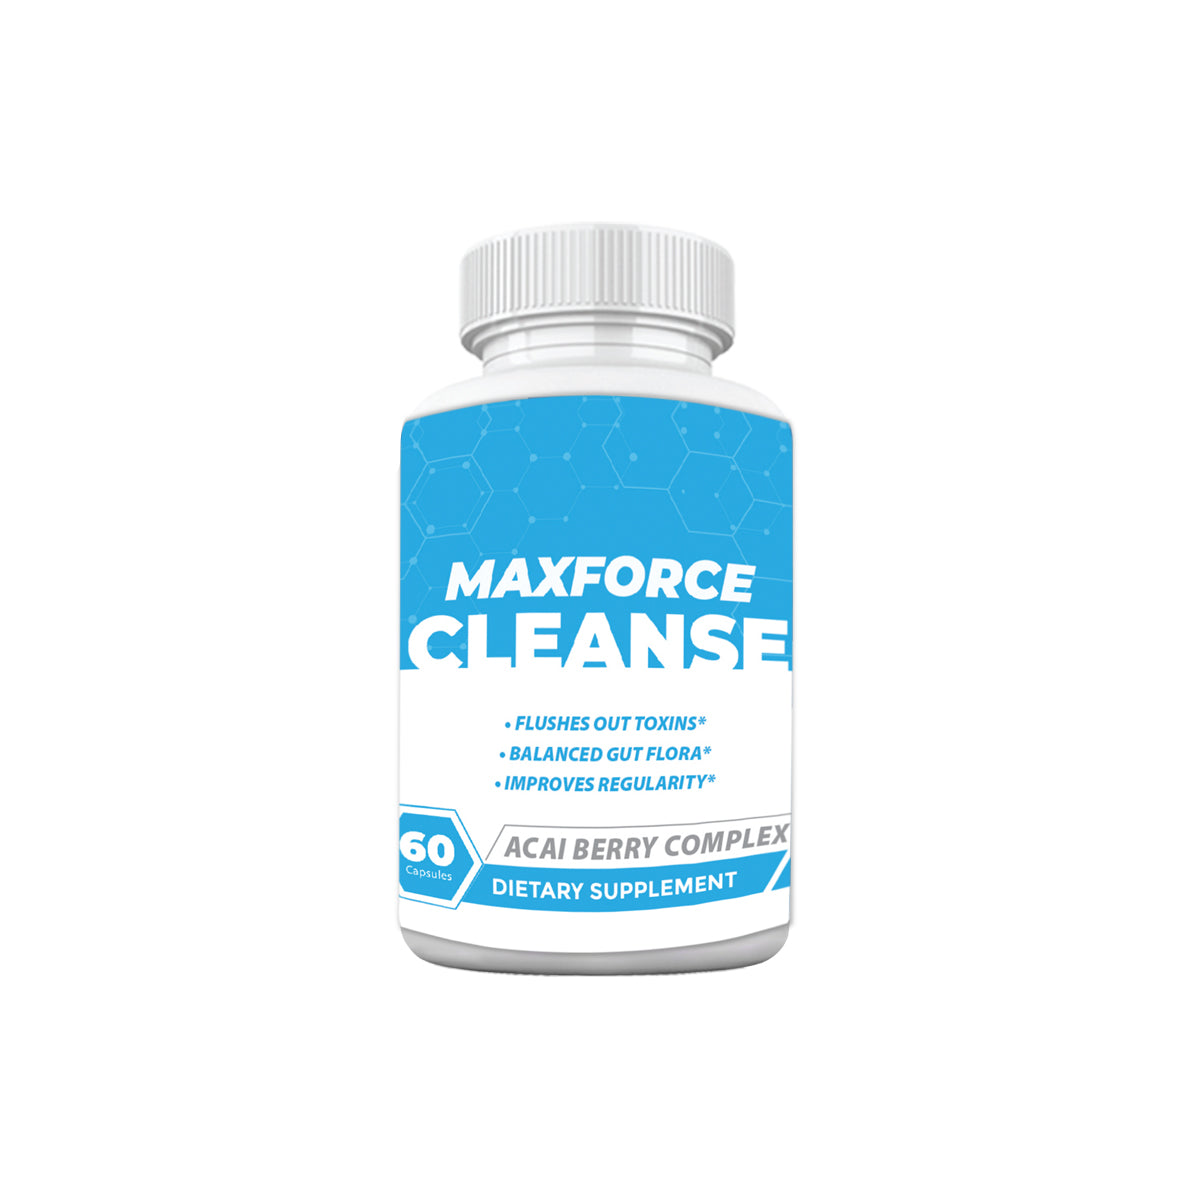 shopify-Max Force Garcinia 60 or 120 Count - Garcinia, Keto, Cleanse or Three Pack-7